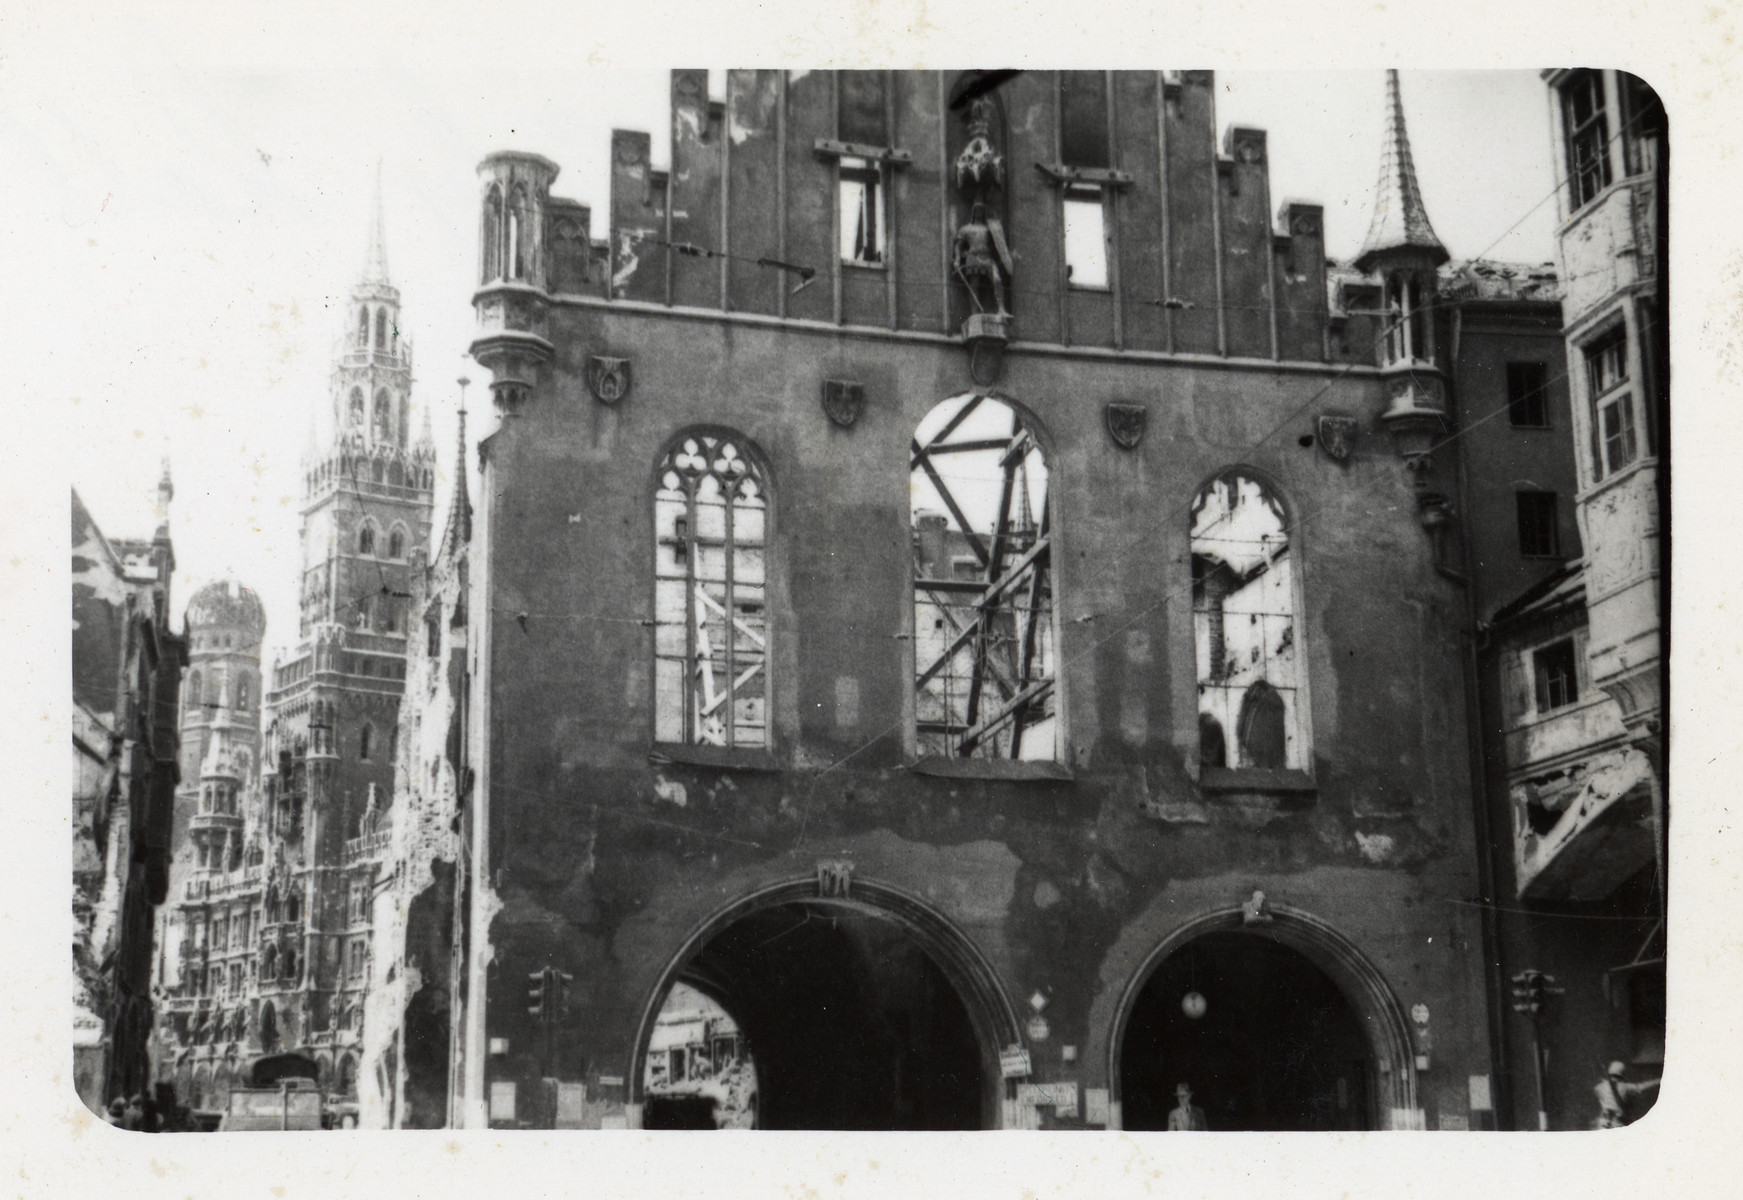 View of the bomb damaged city hall in Munich.